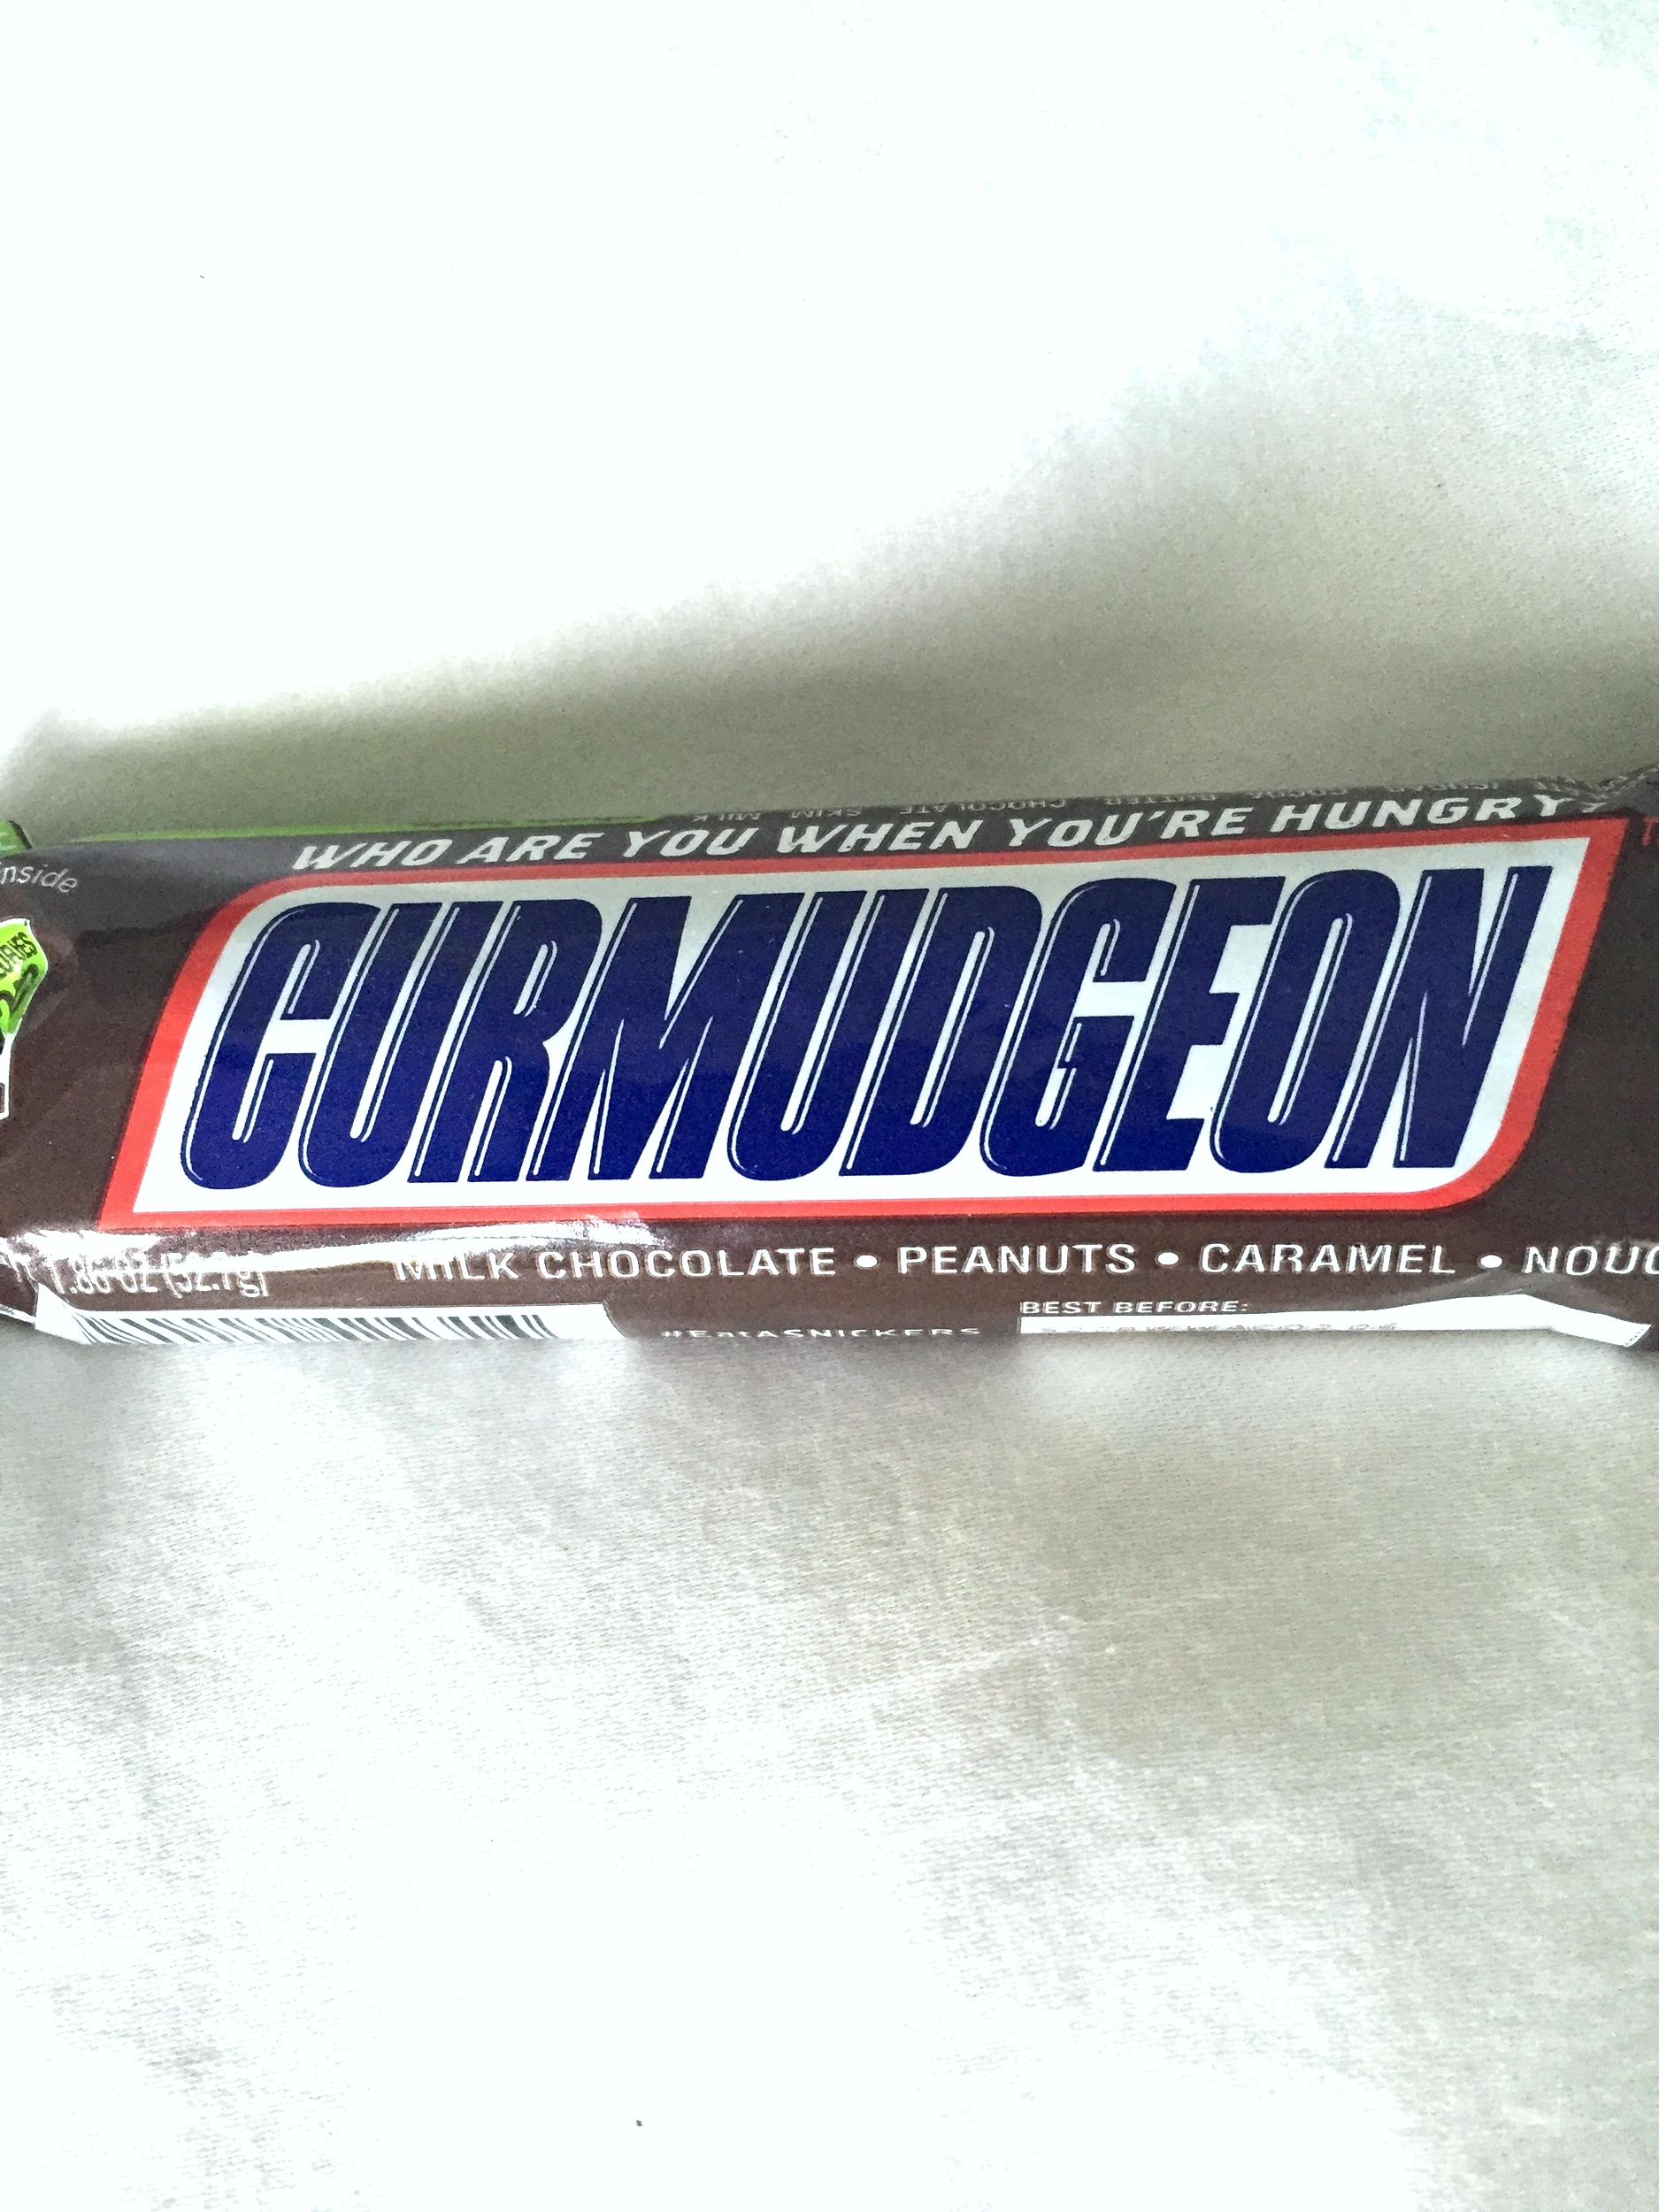 Thanks, Nicole, for finding the world's most perfect word on the world's most perfect candy bar.